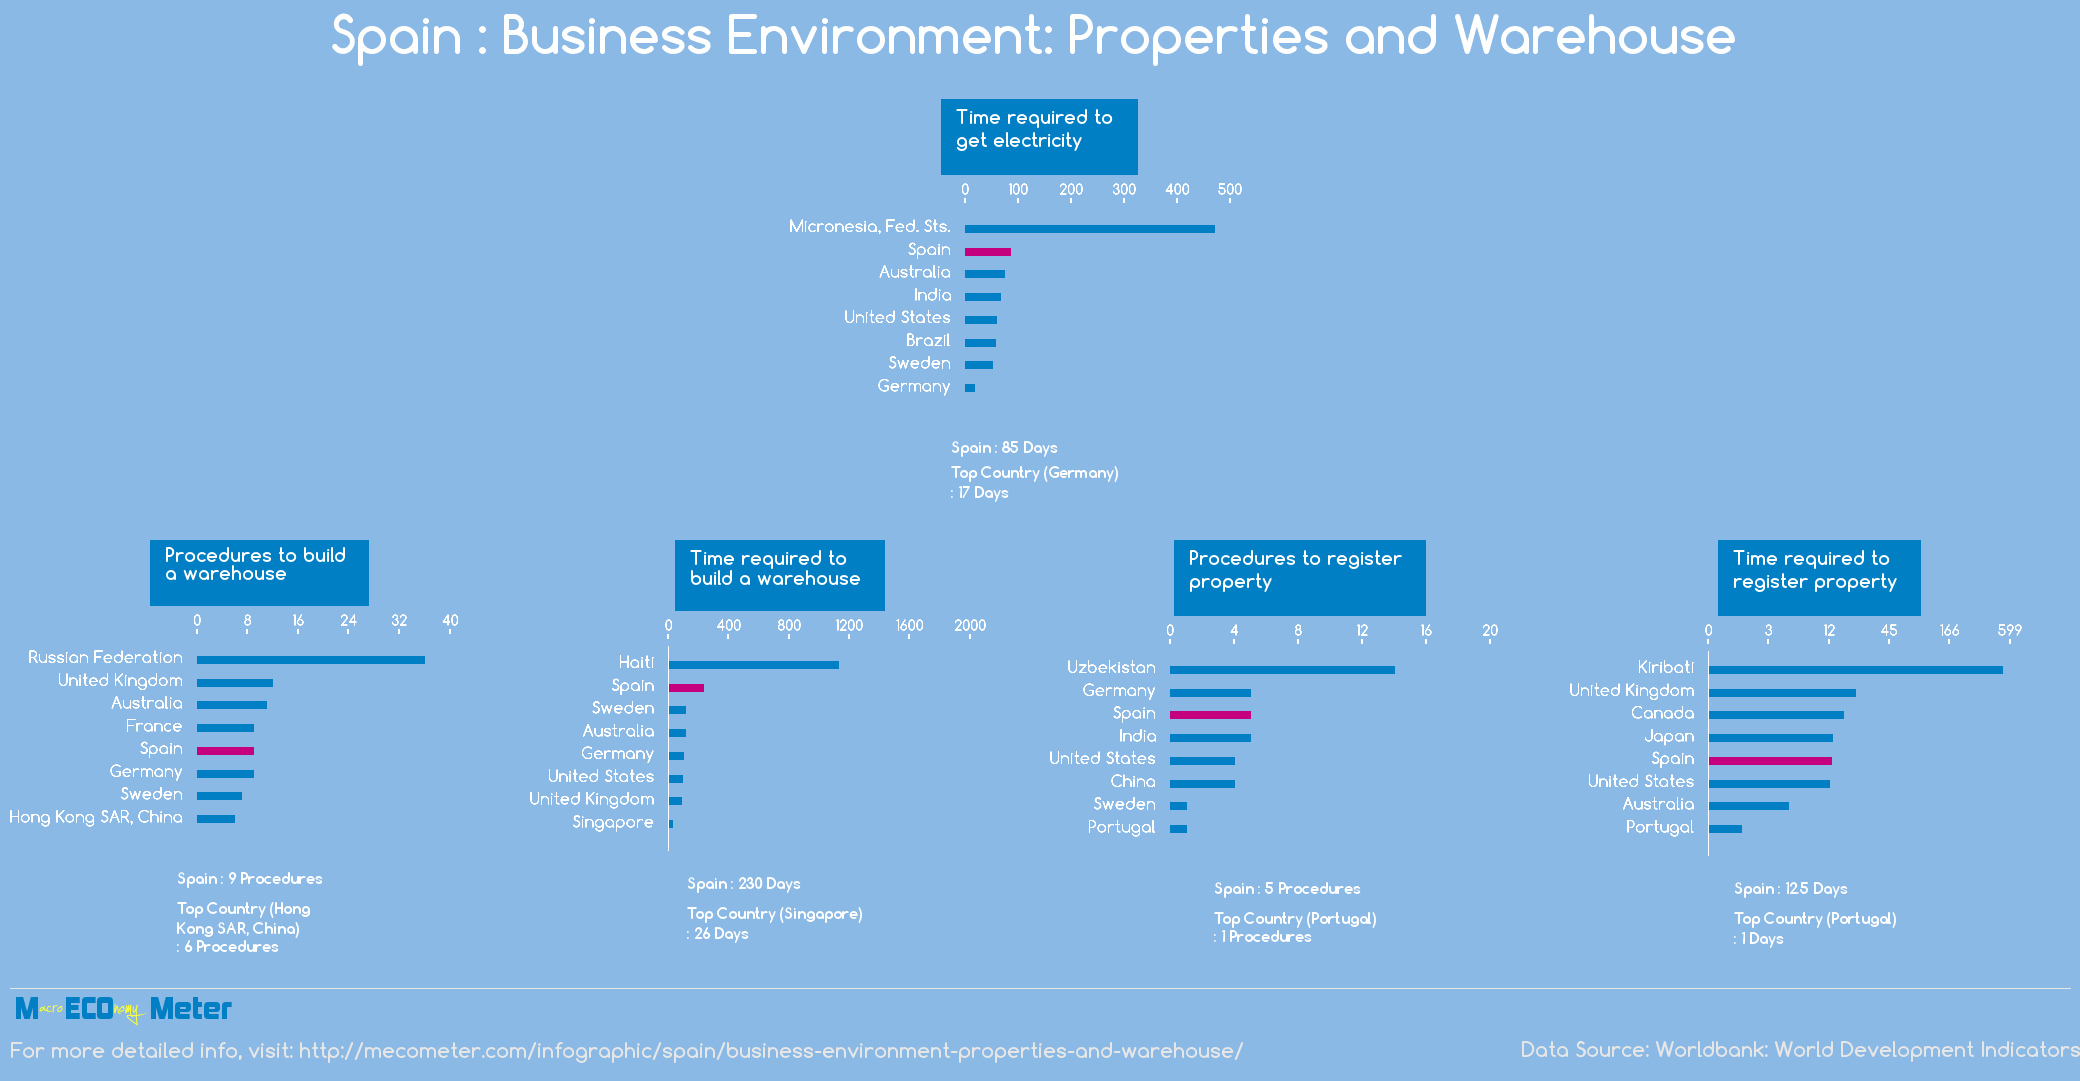 Spain : Business Environment: Properties and Warehouse